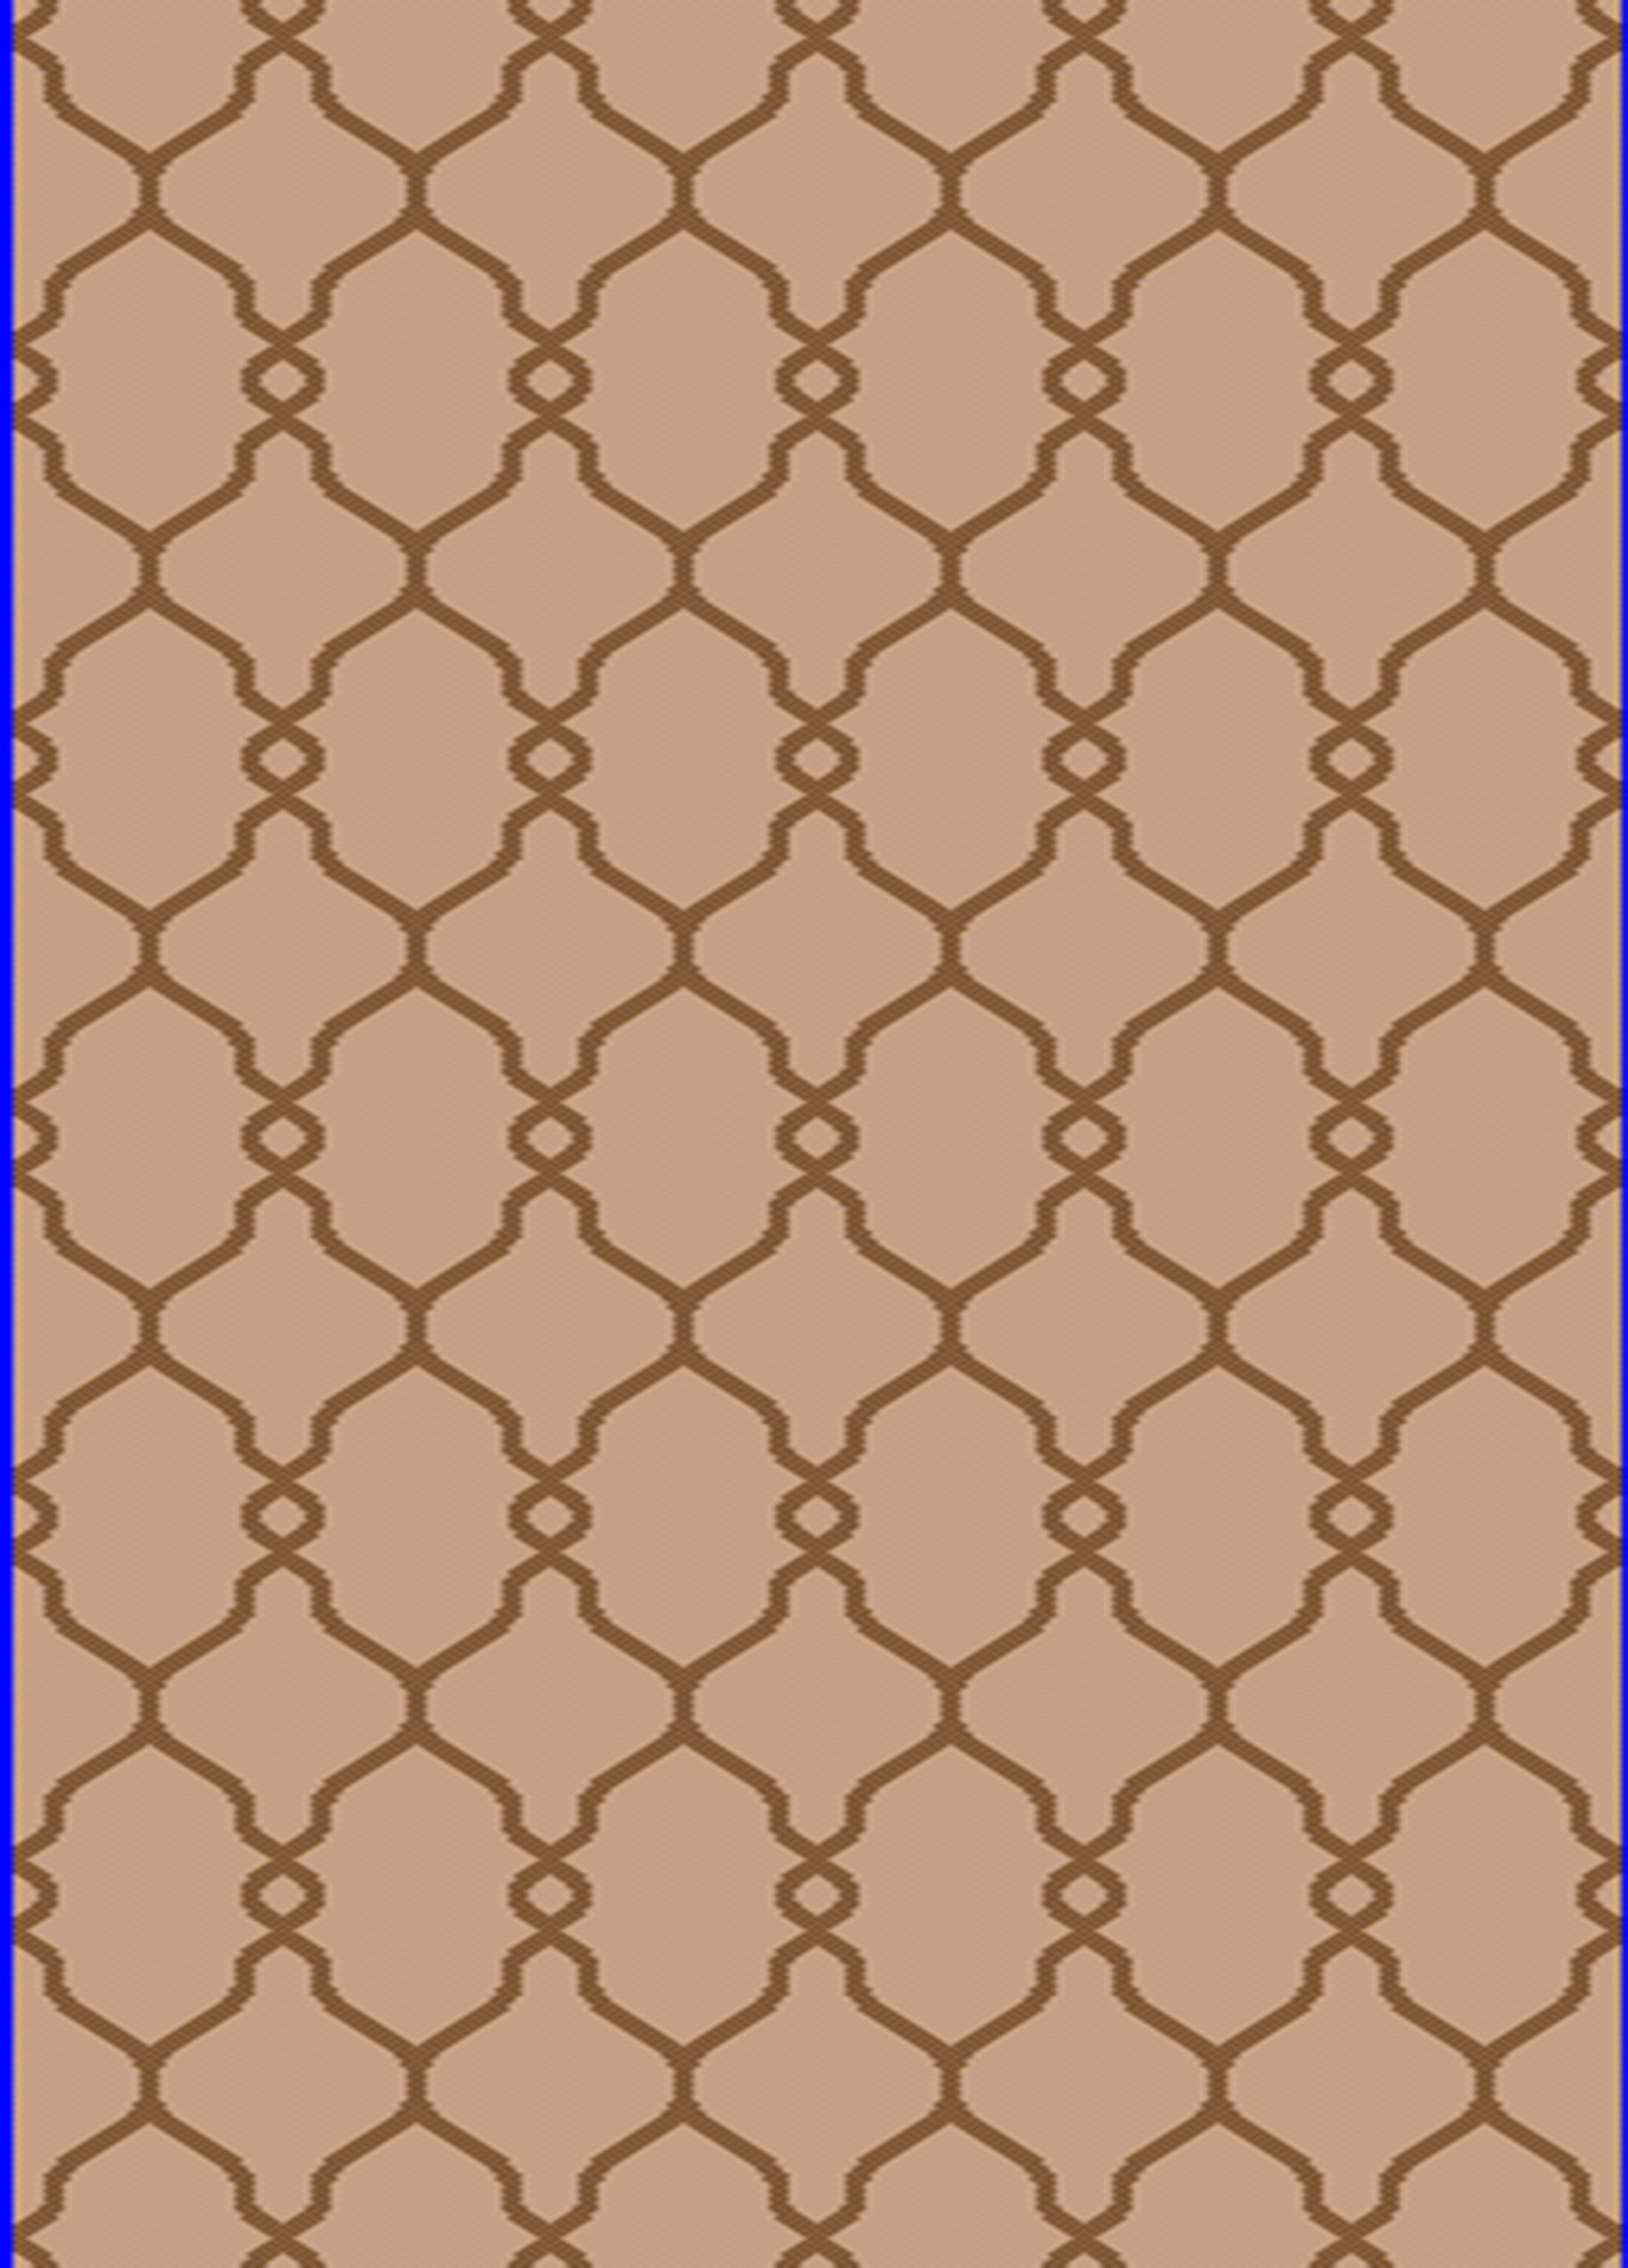 Passion Beige Rug Rug Size: Rectangle 7'10